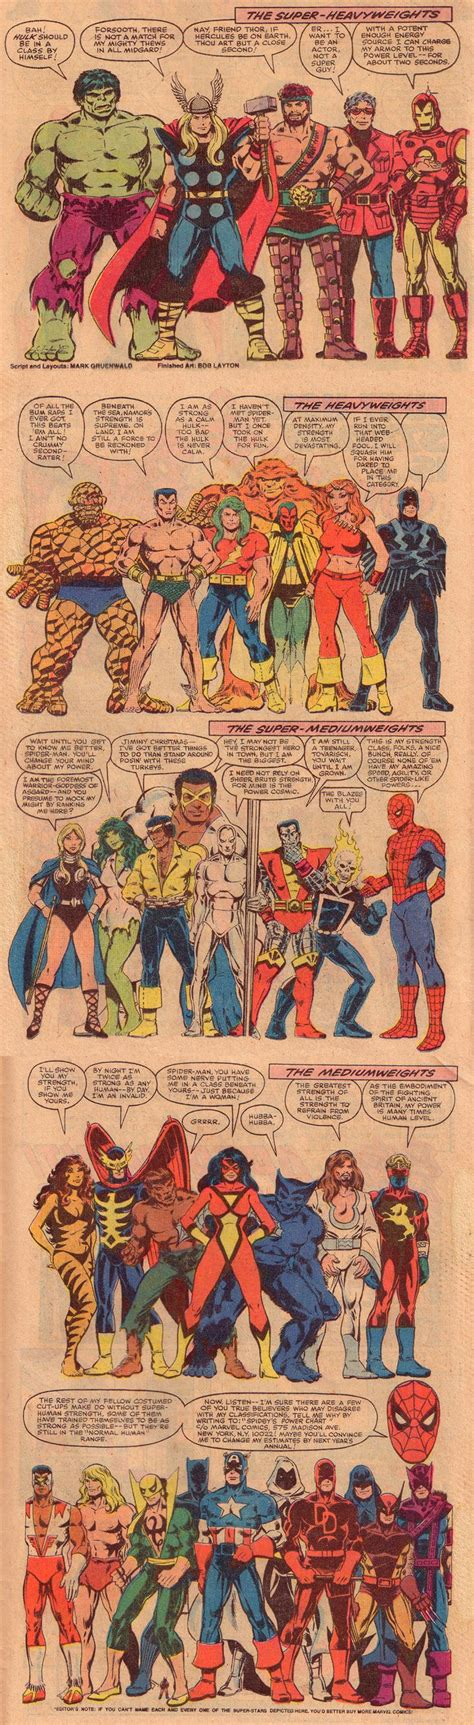 top 10 toughest characters in the bible toptenznet best 25 strongest superhero ideas on pinterest